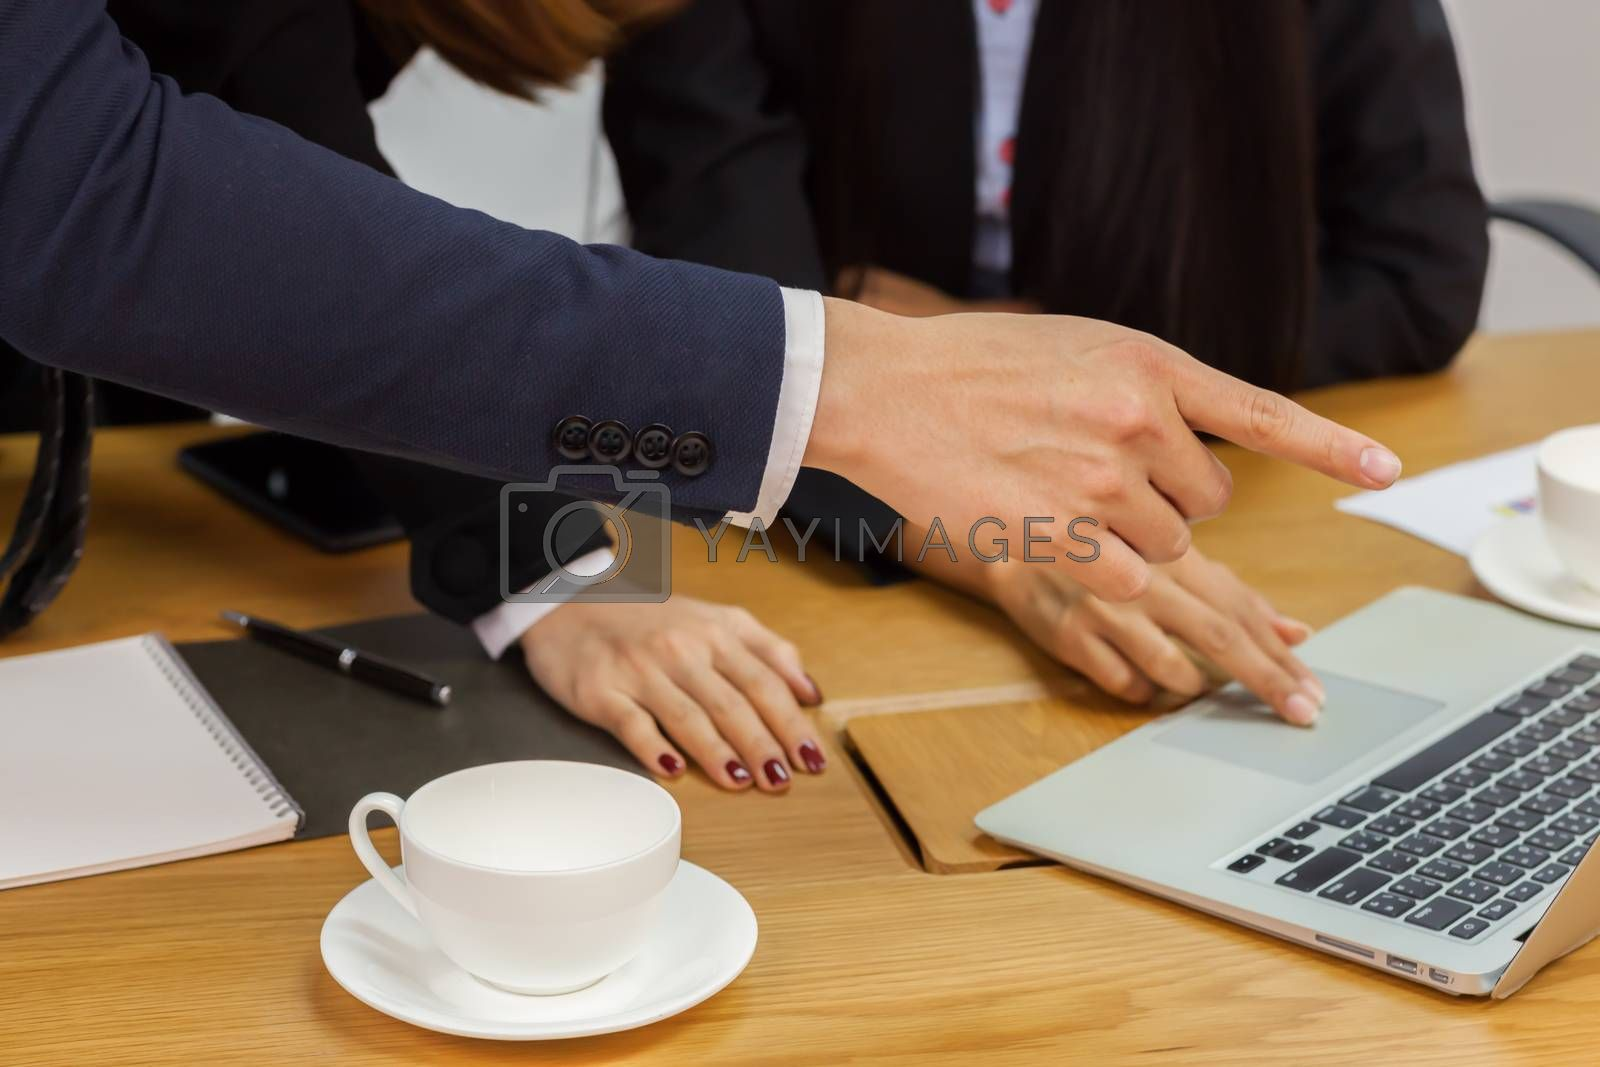 A business group discussion in meeting room with document and computer put on wooden table.